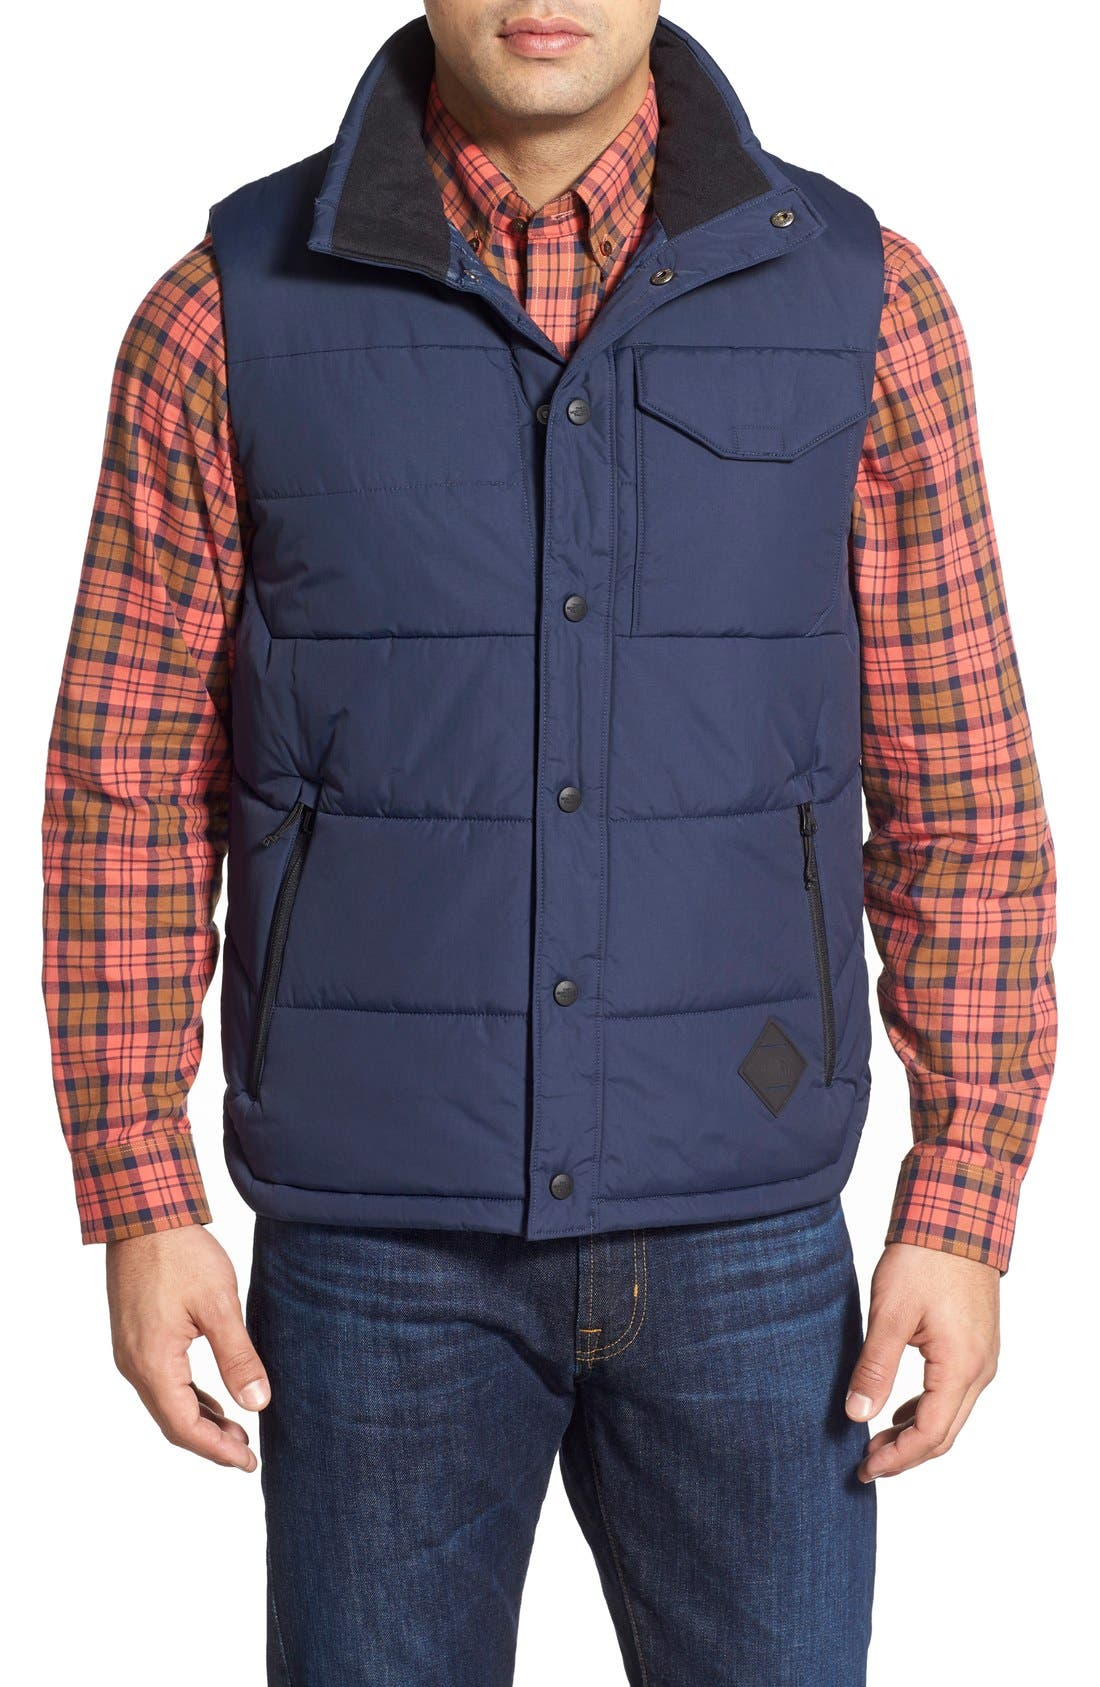 'Patrick's Point' Quilted Vest,                         Main,                         color, Urban Navy